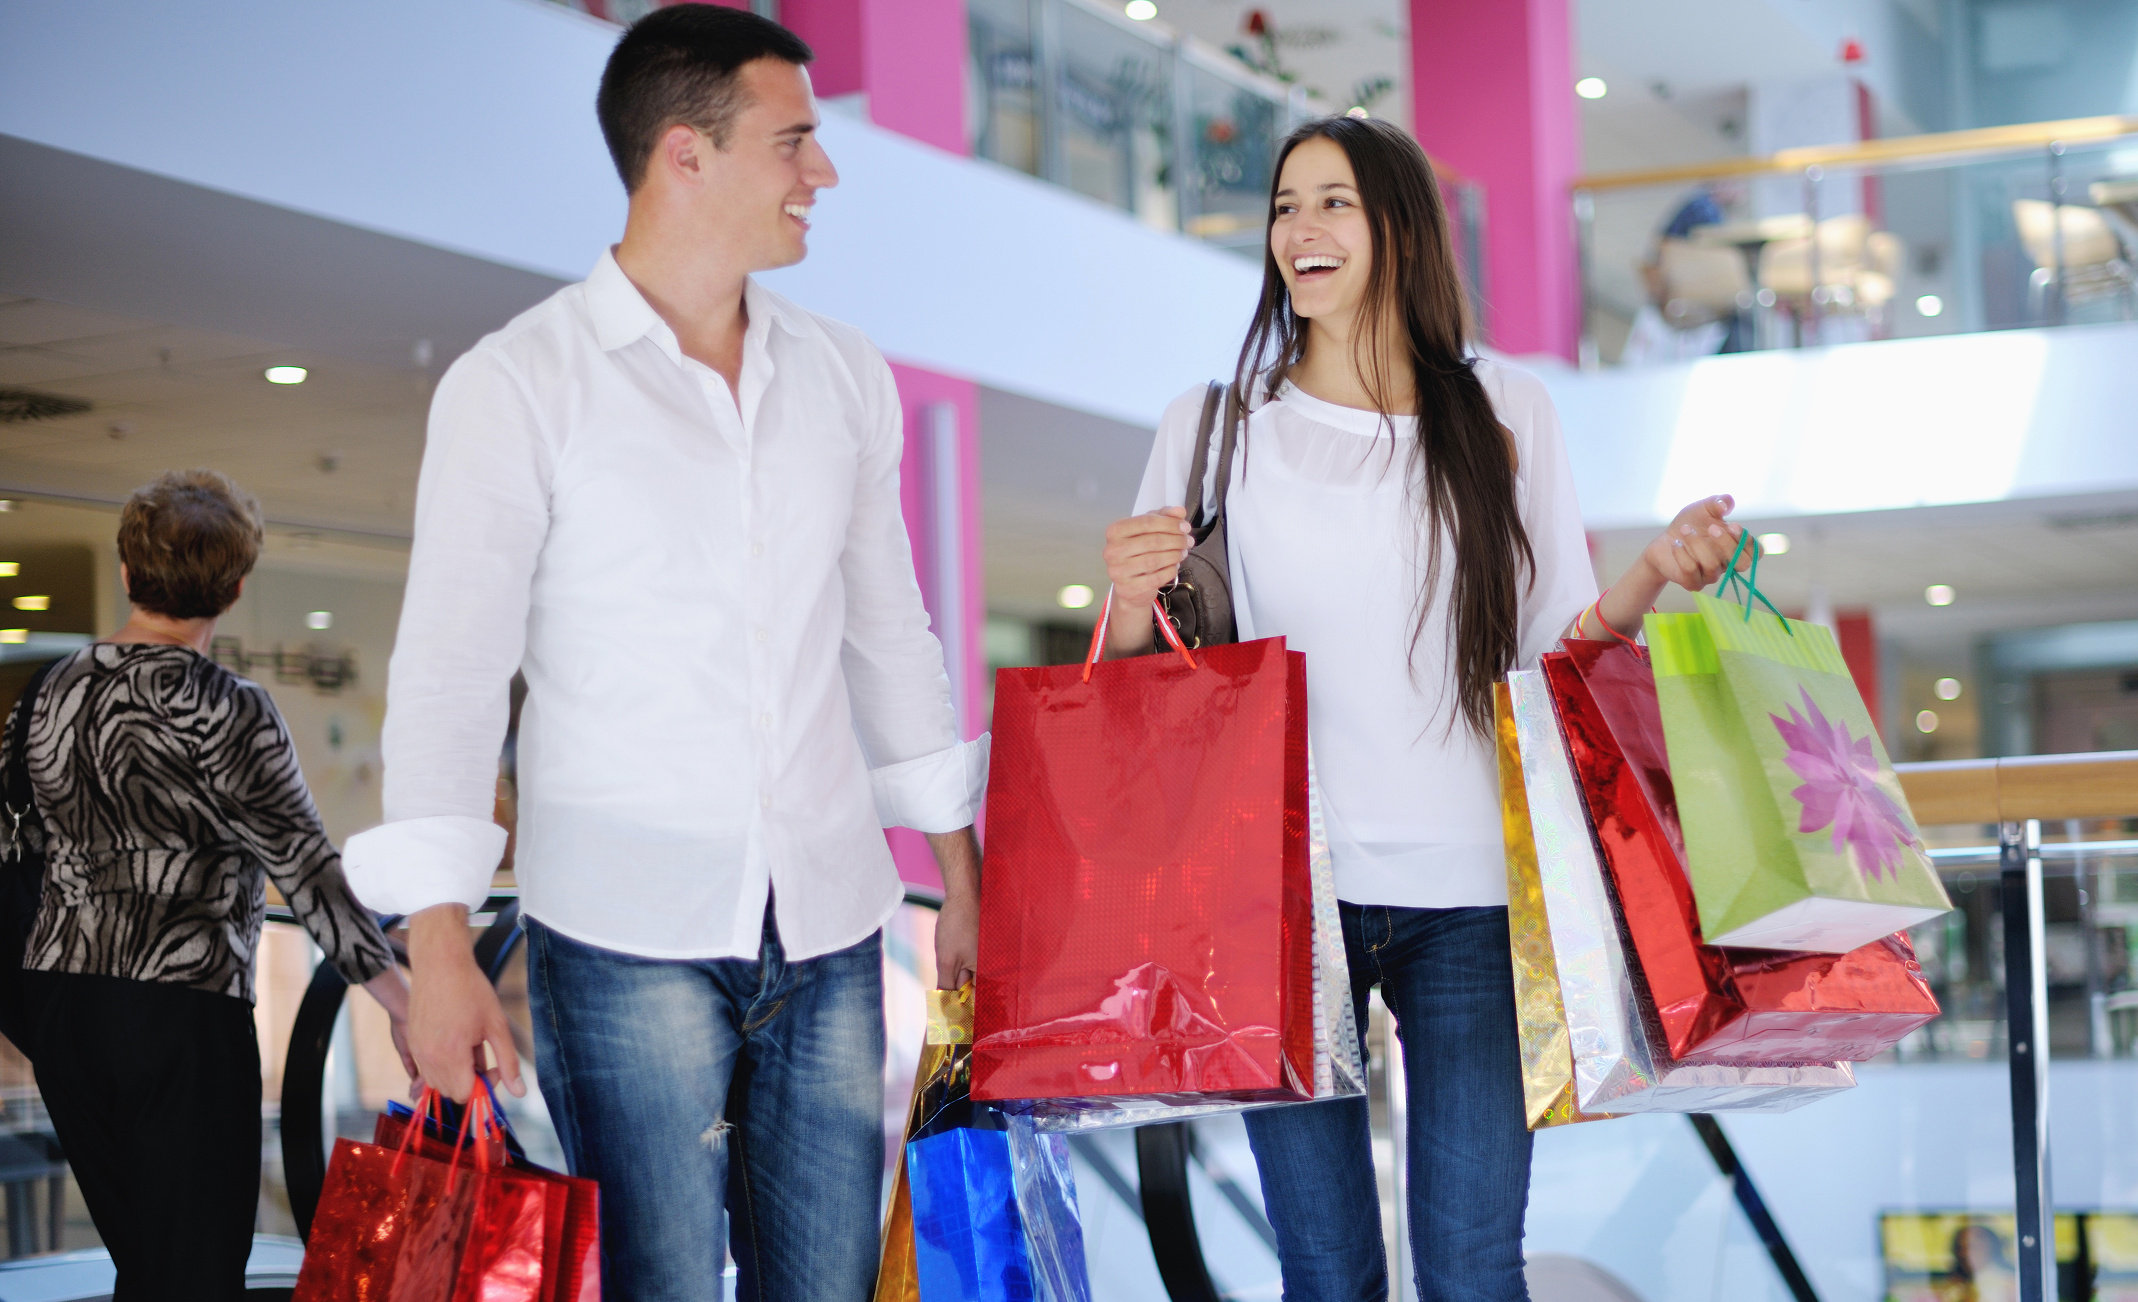 Couple shopping in a mall